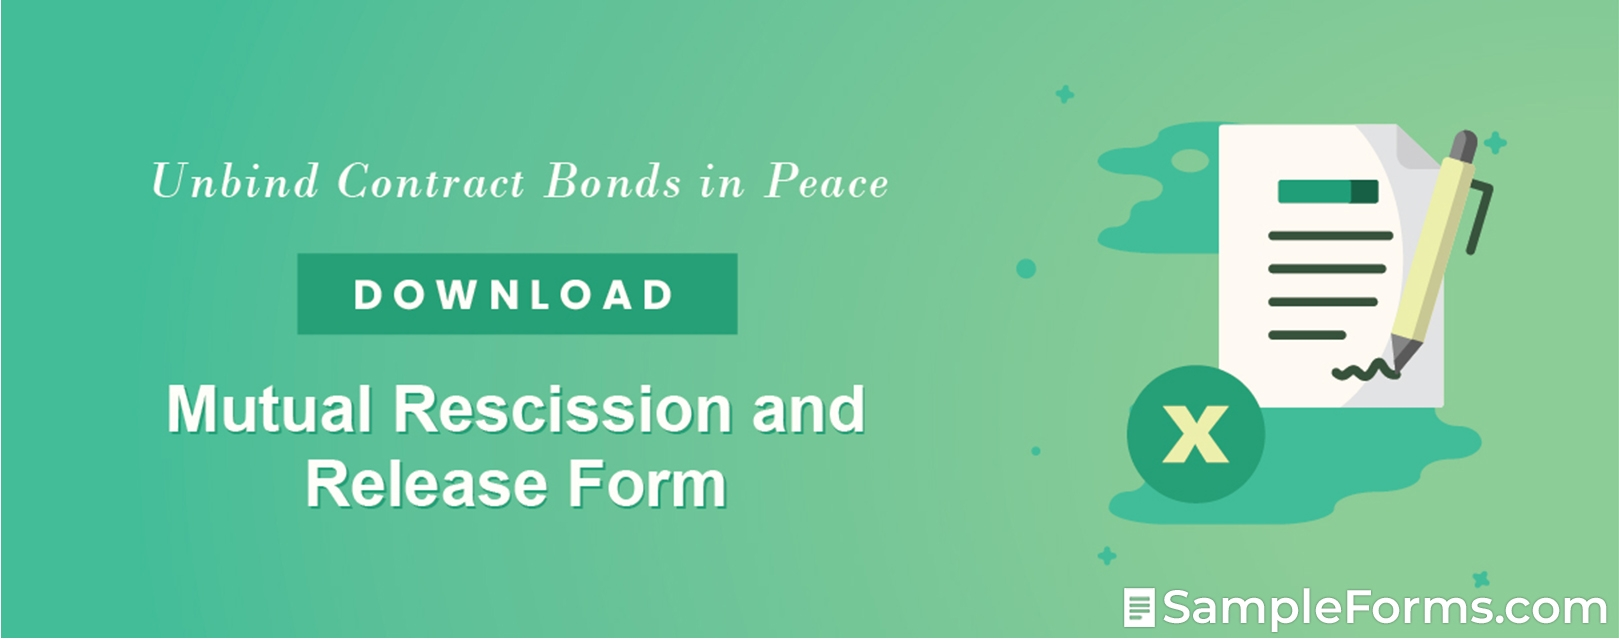 Mutual Rescission and Release Form